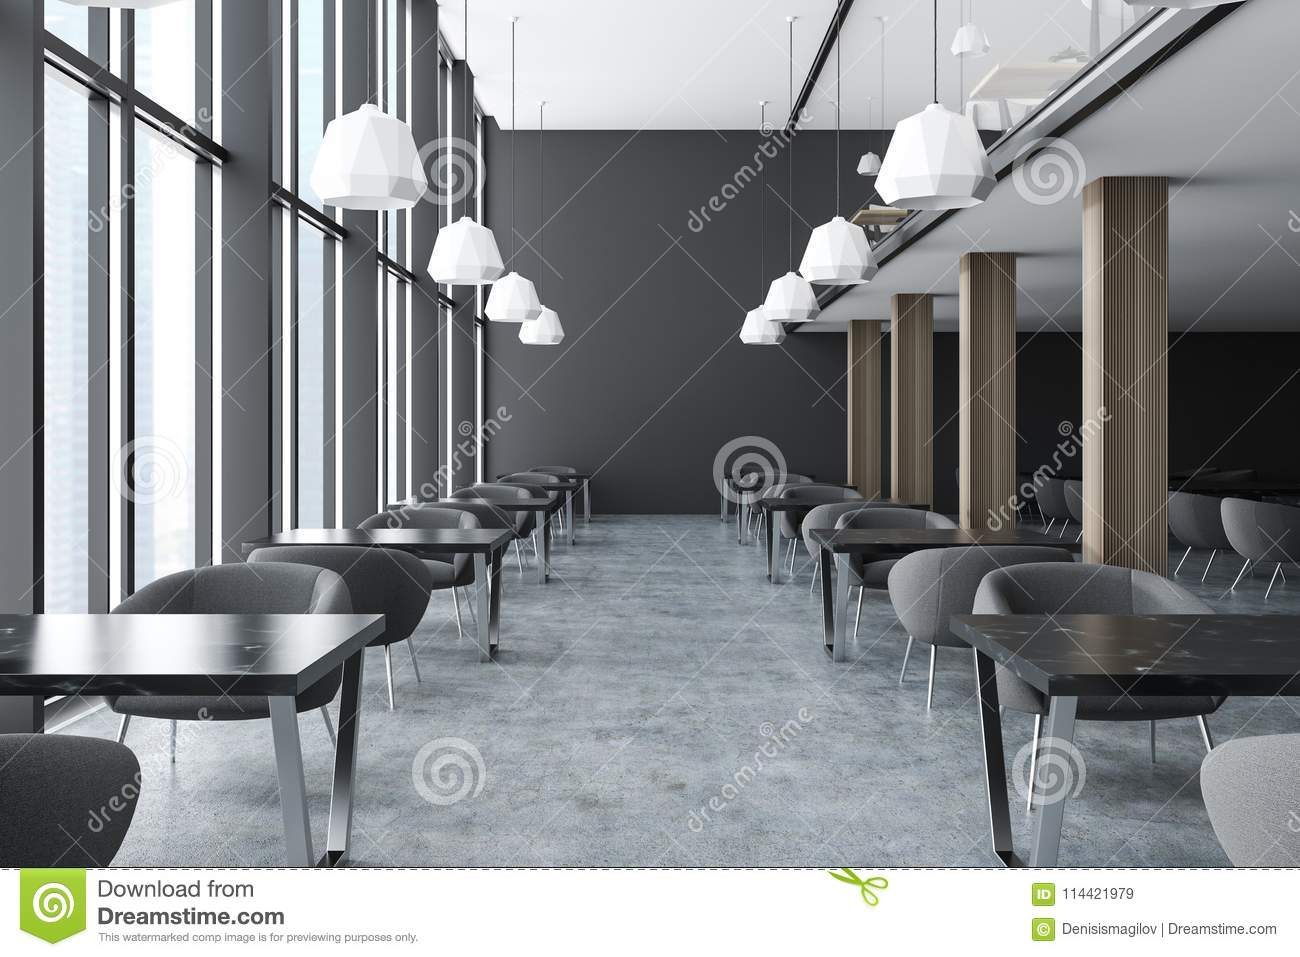 Modern Office Staff Room Or Classroom With Dark Gray Walls, Loft Windows,  Concrete Floor, Marble Desks And Black Chairs. 3d Rendering Mock Up